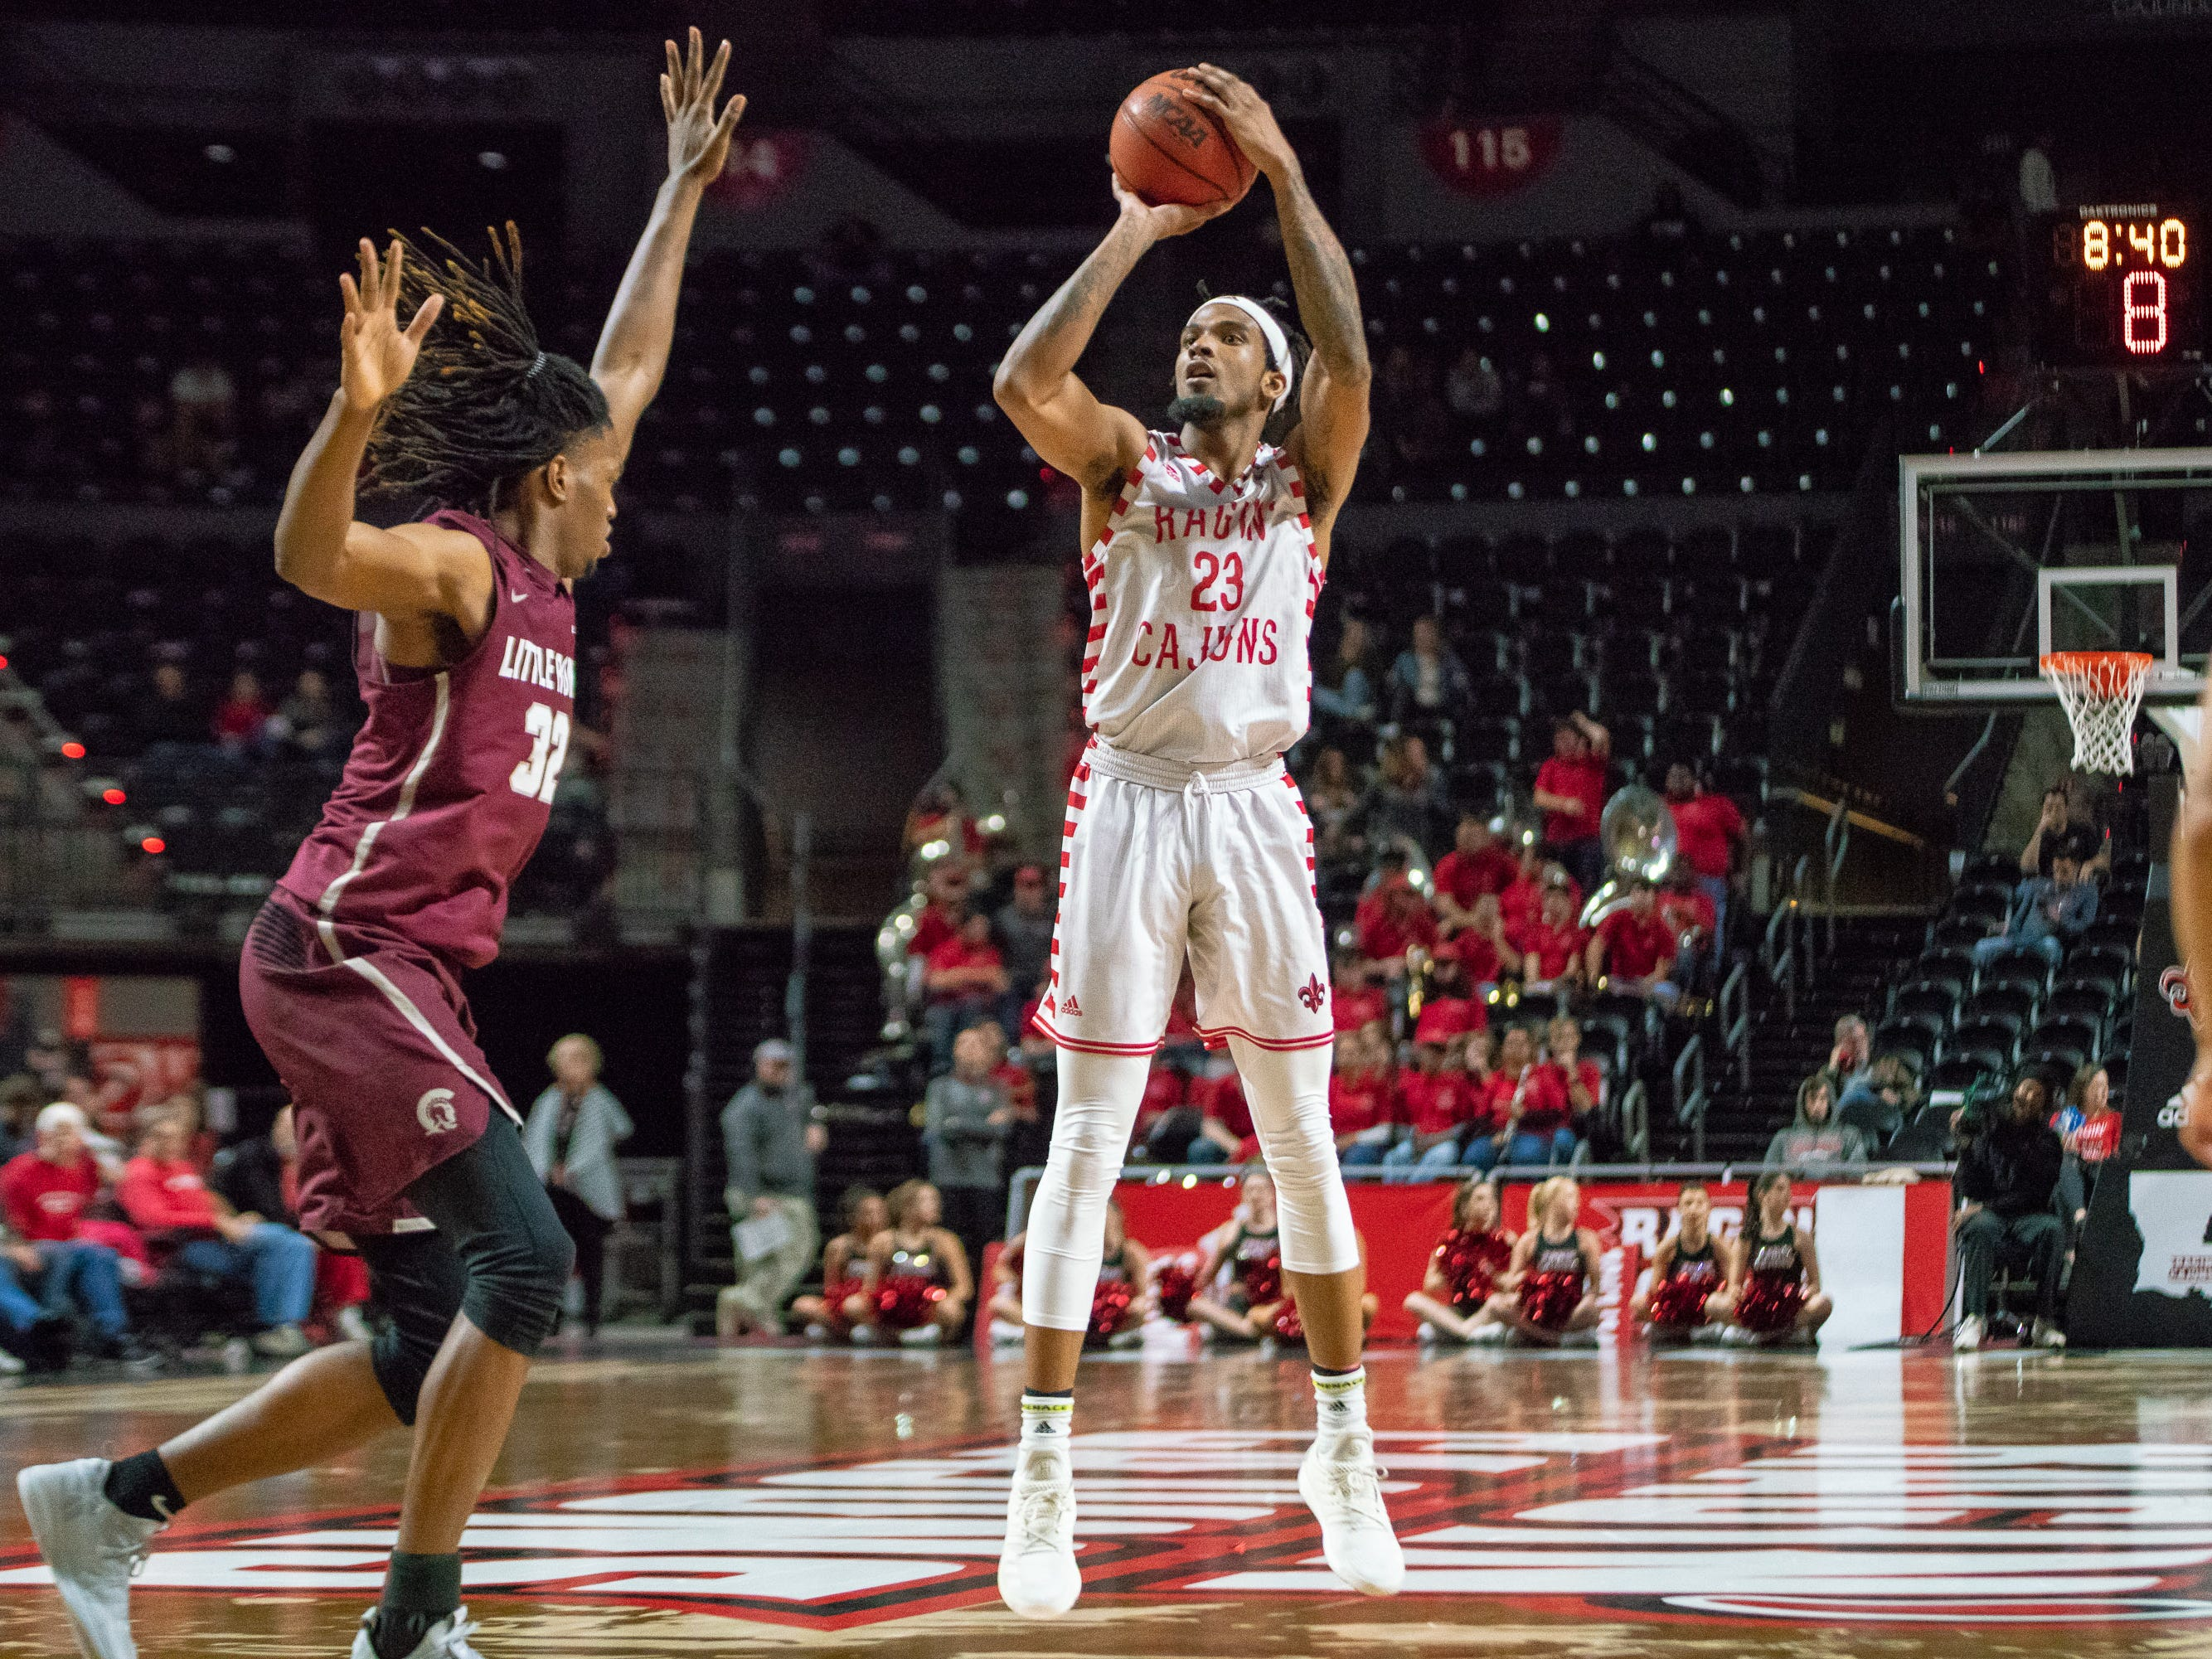 UL's Jakeenan Gant shoots from the three-point line as the Ragin' Cajuns take on the Little Rock Trojans at the Cajundome on January 5, 2019.